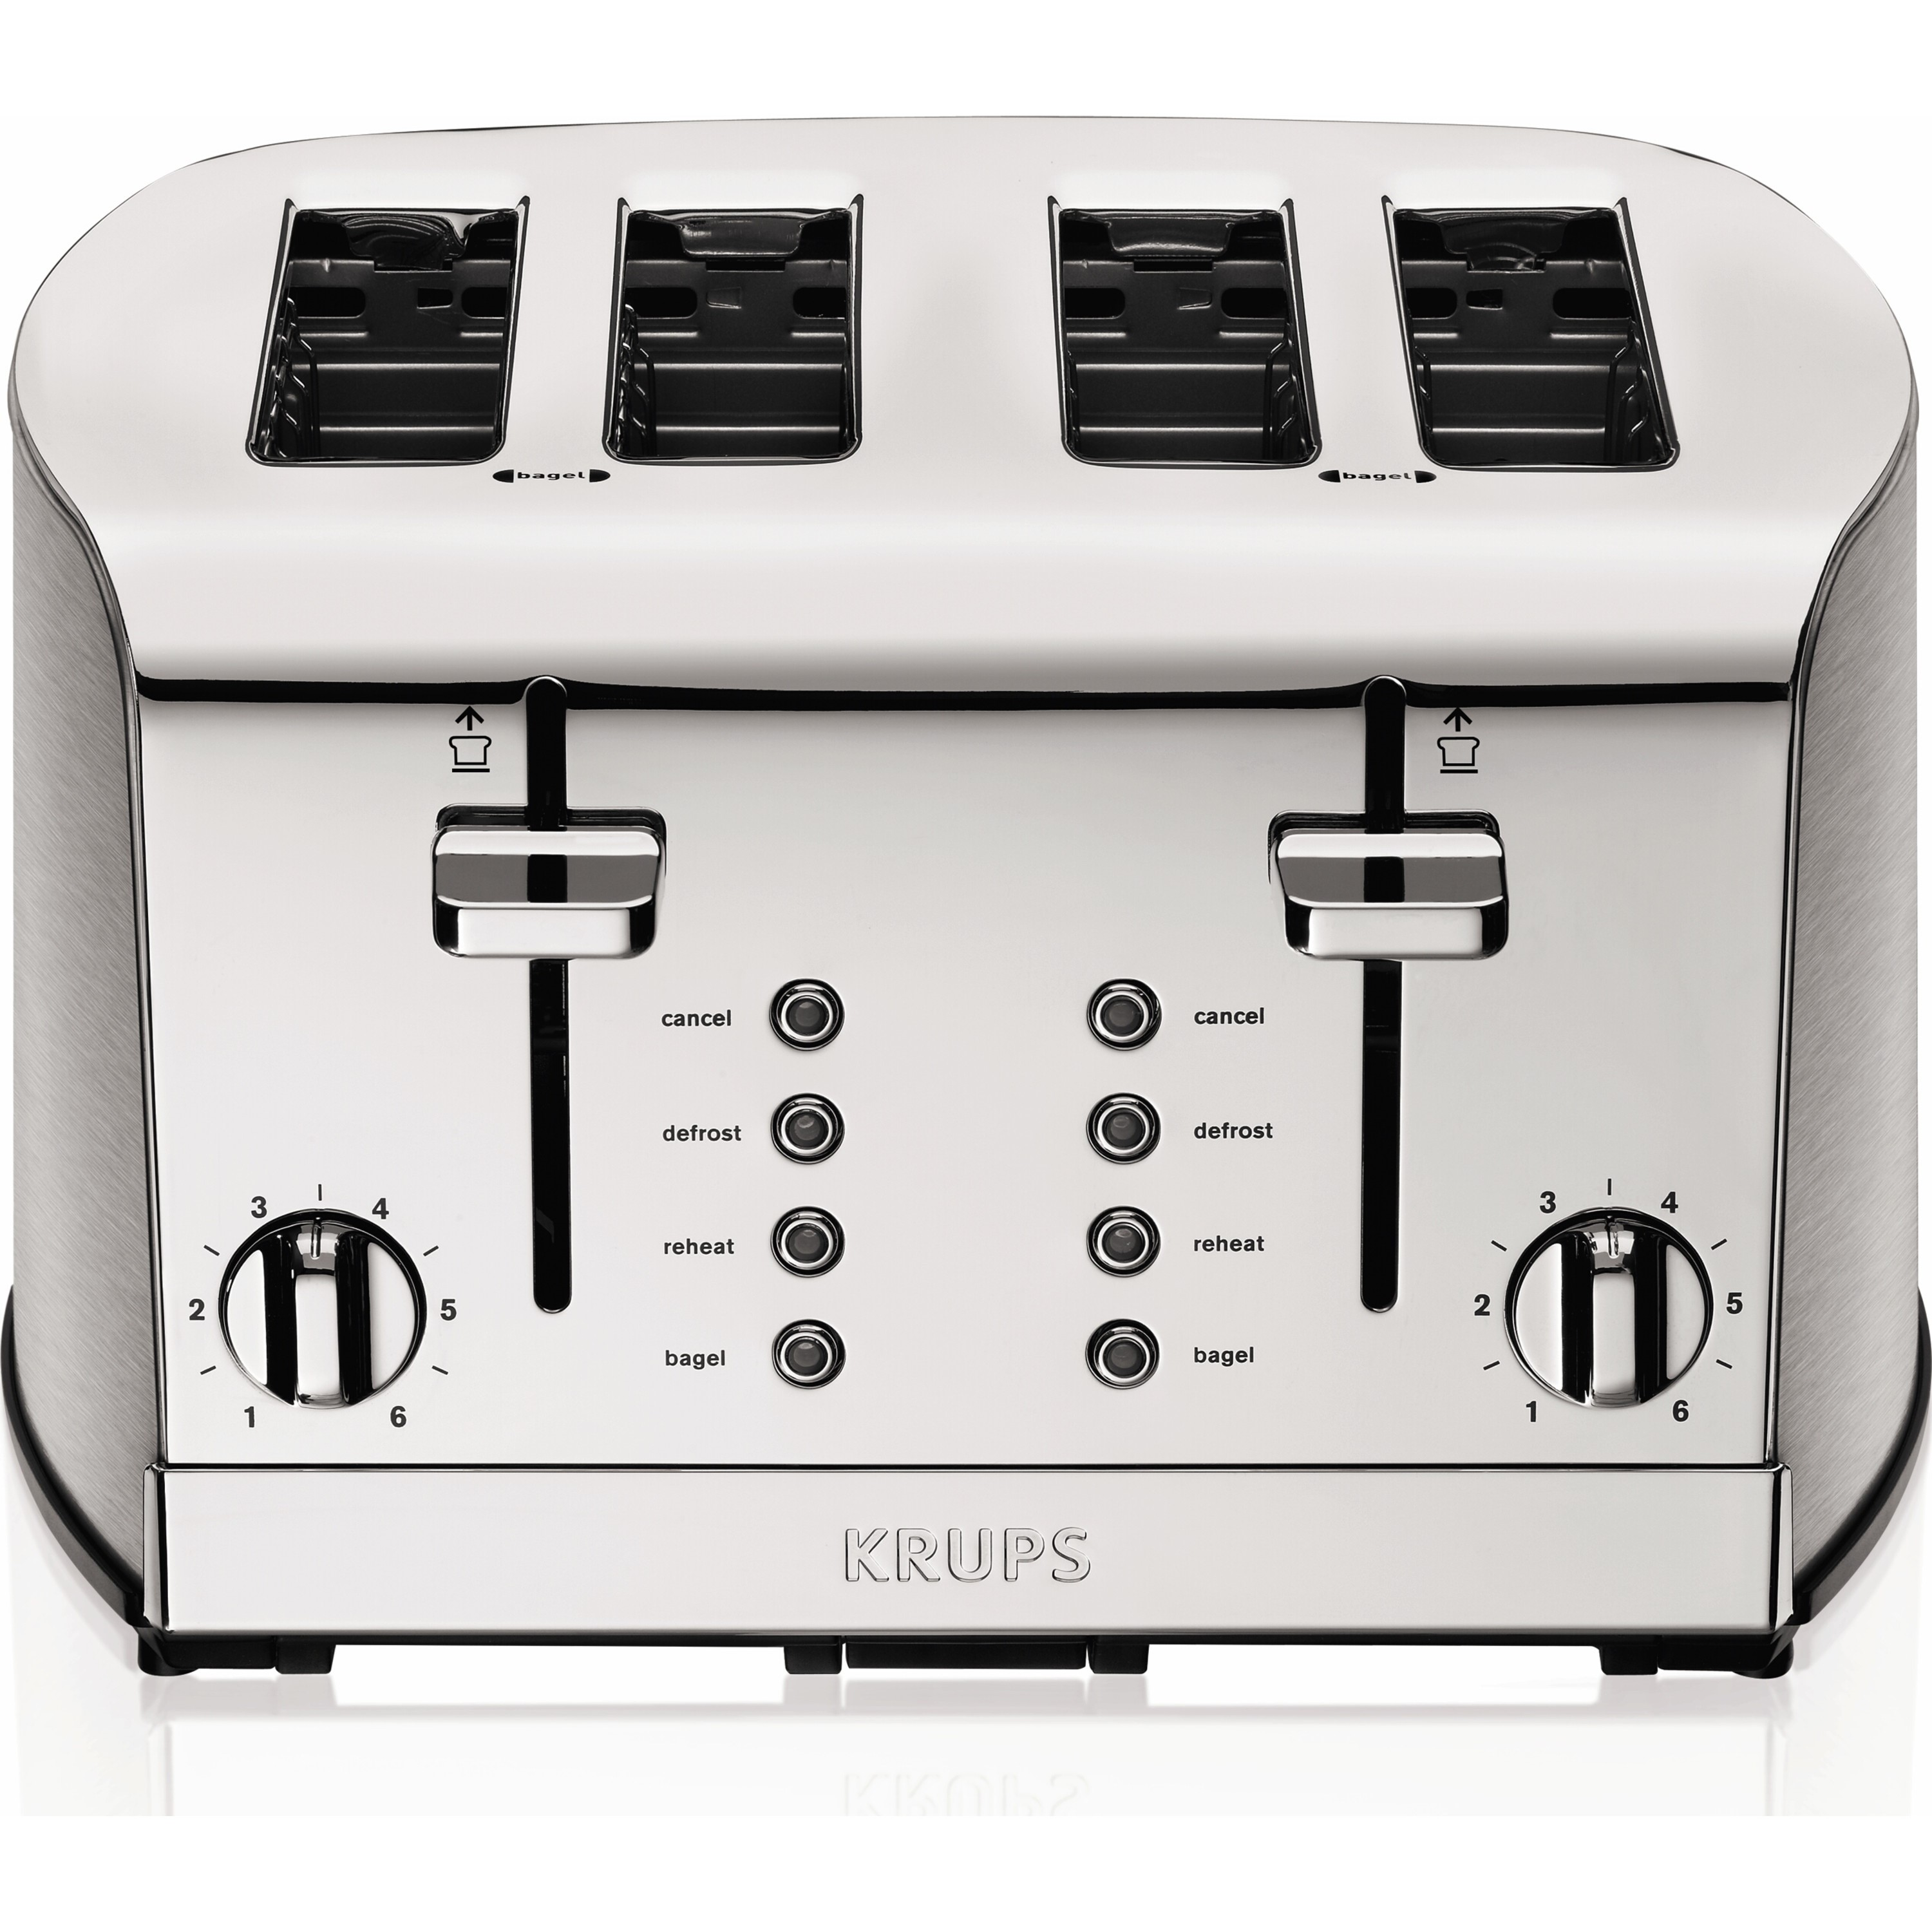 KRUPS 4-Slice Brushed and Chrome Stainless Steel Toaster